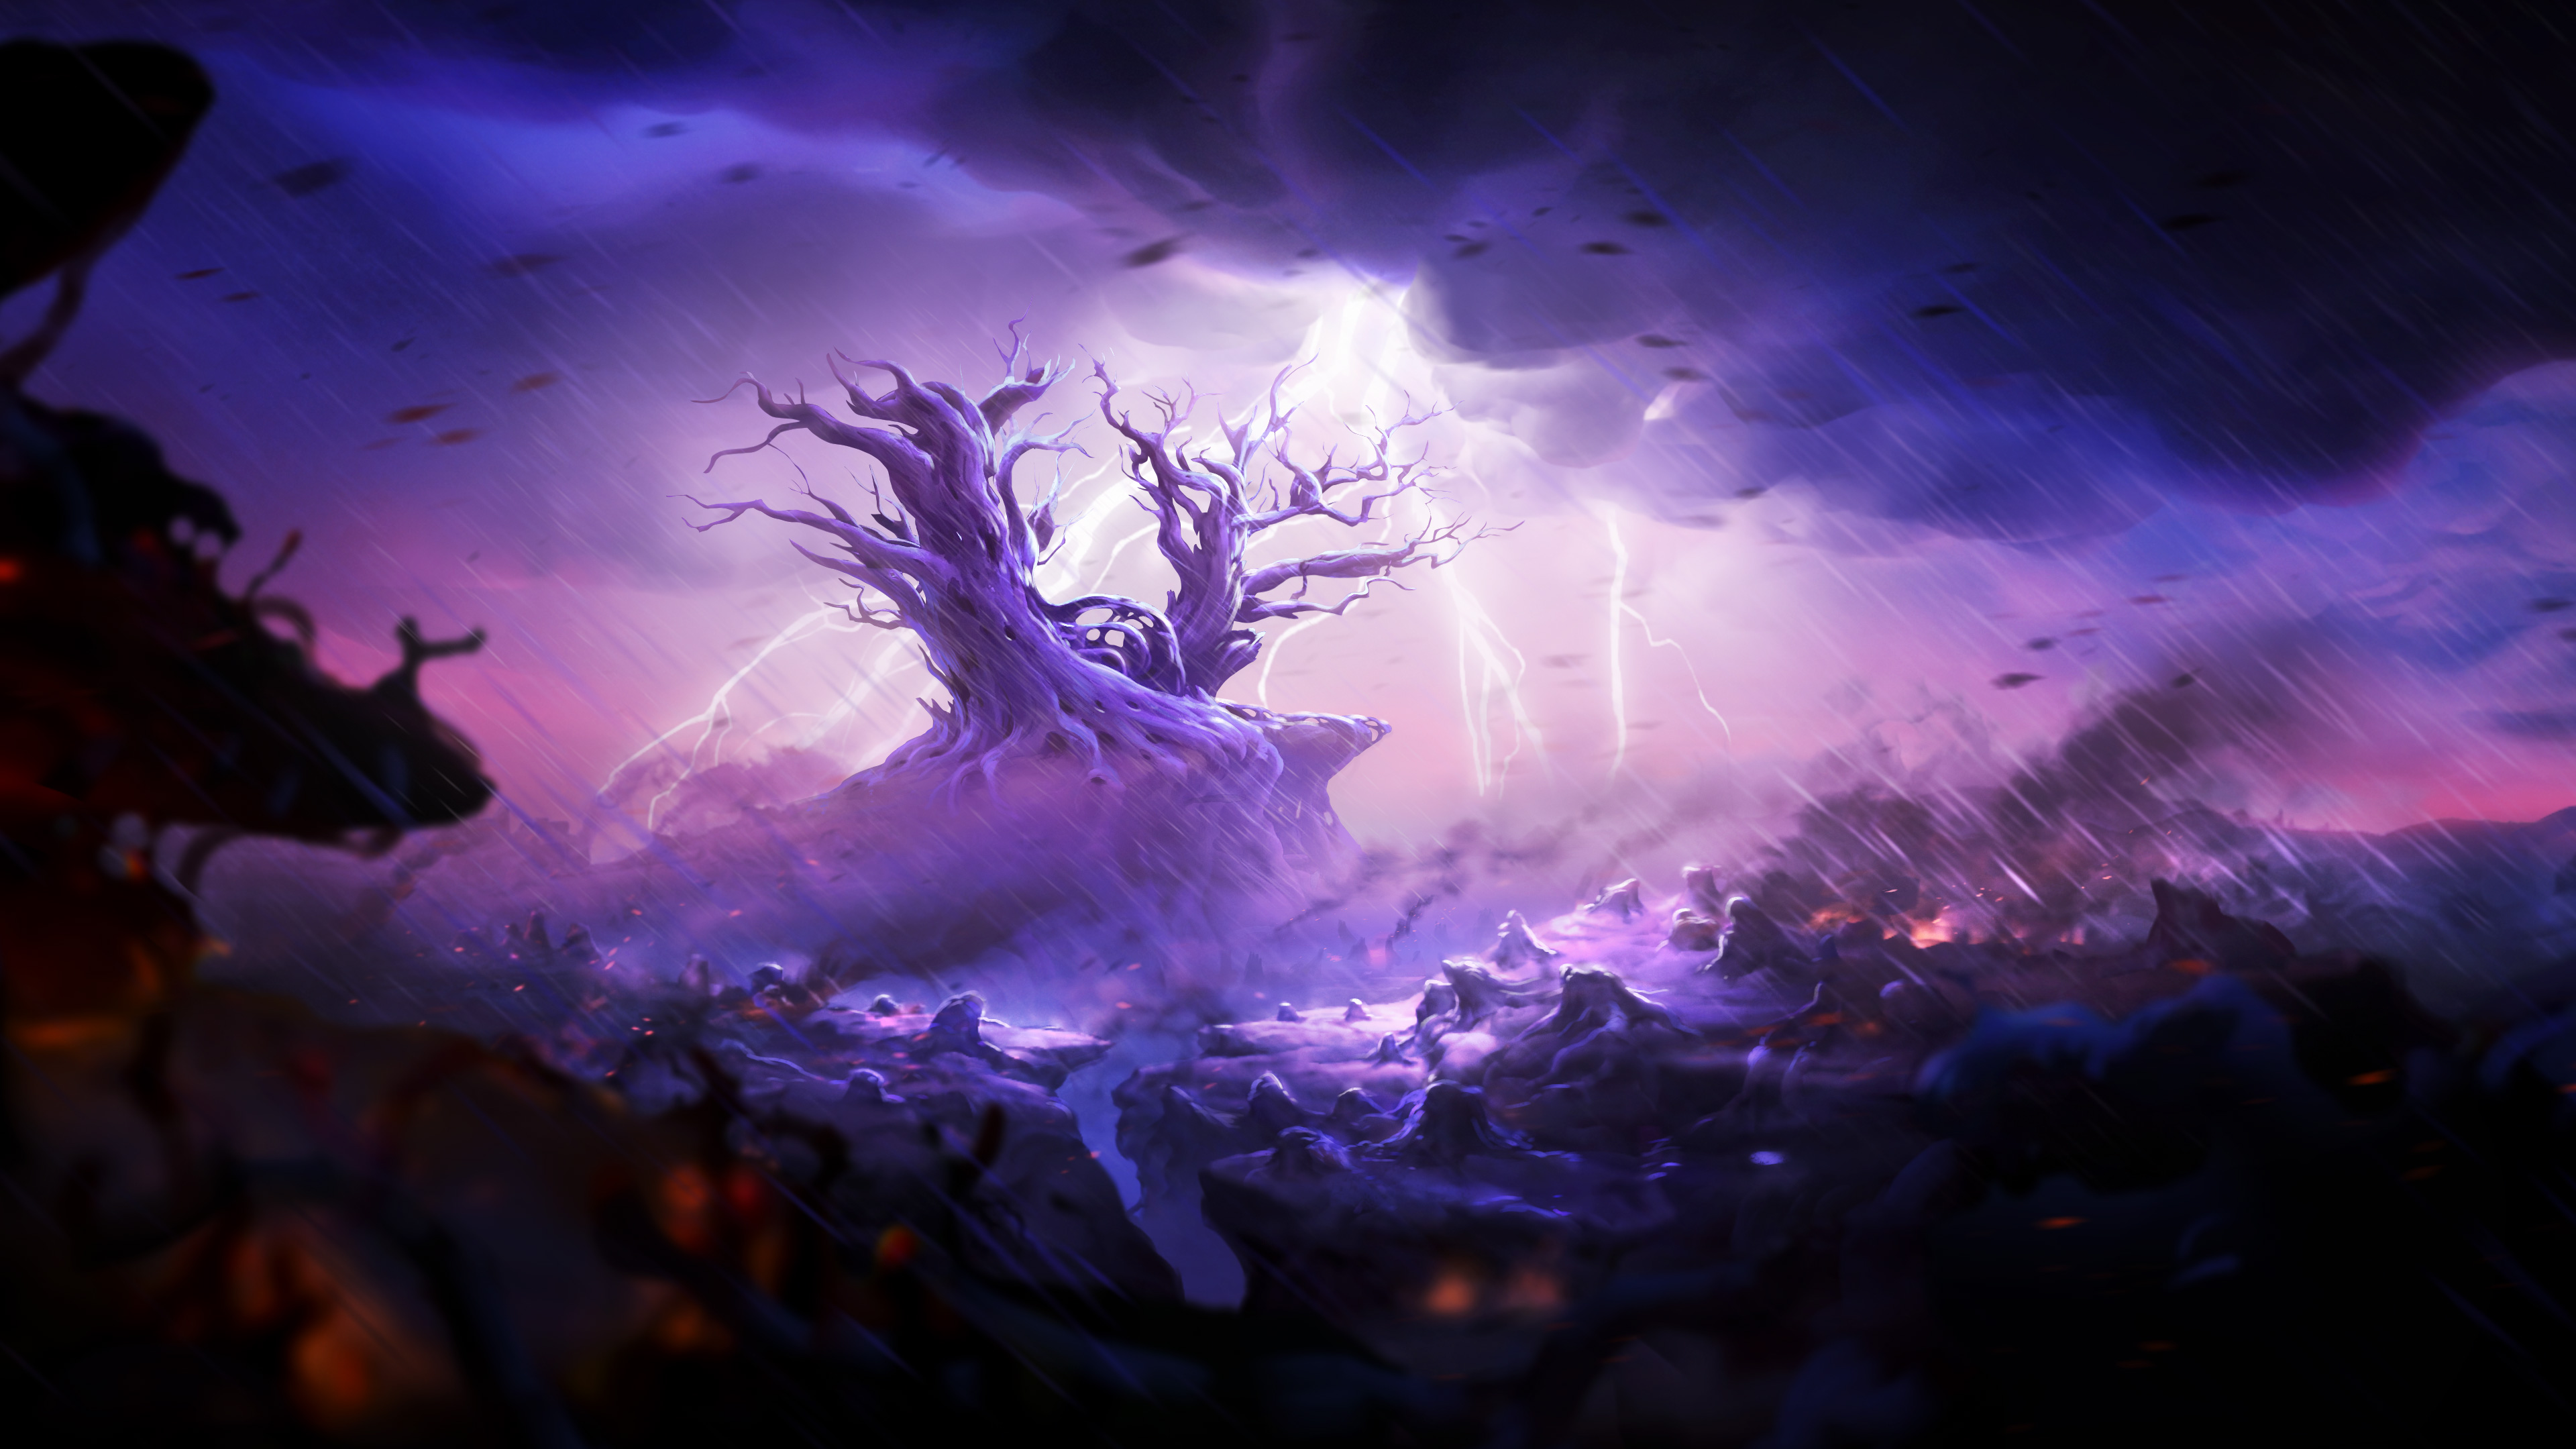 ori and the blind forest spirit tree, hd games, 4k wallpapers